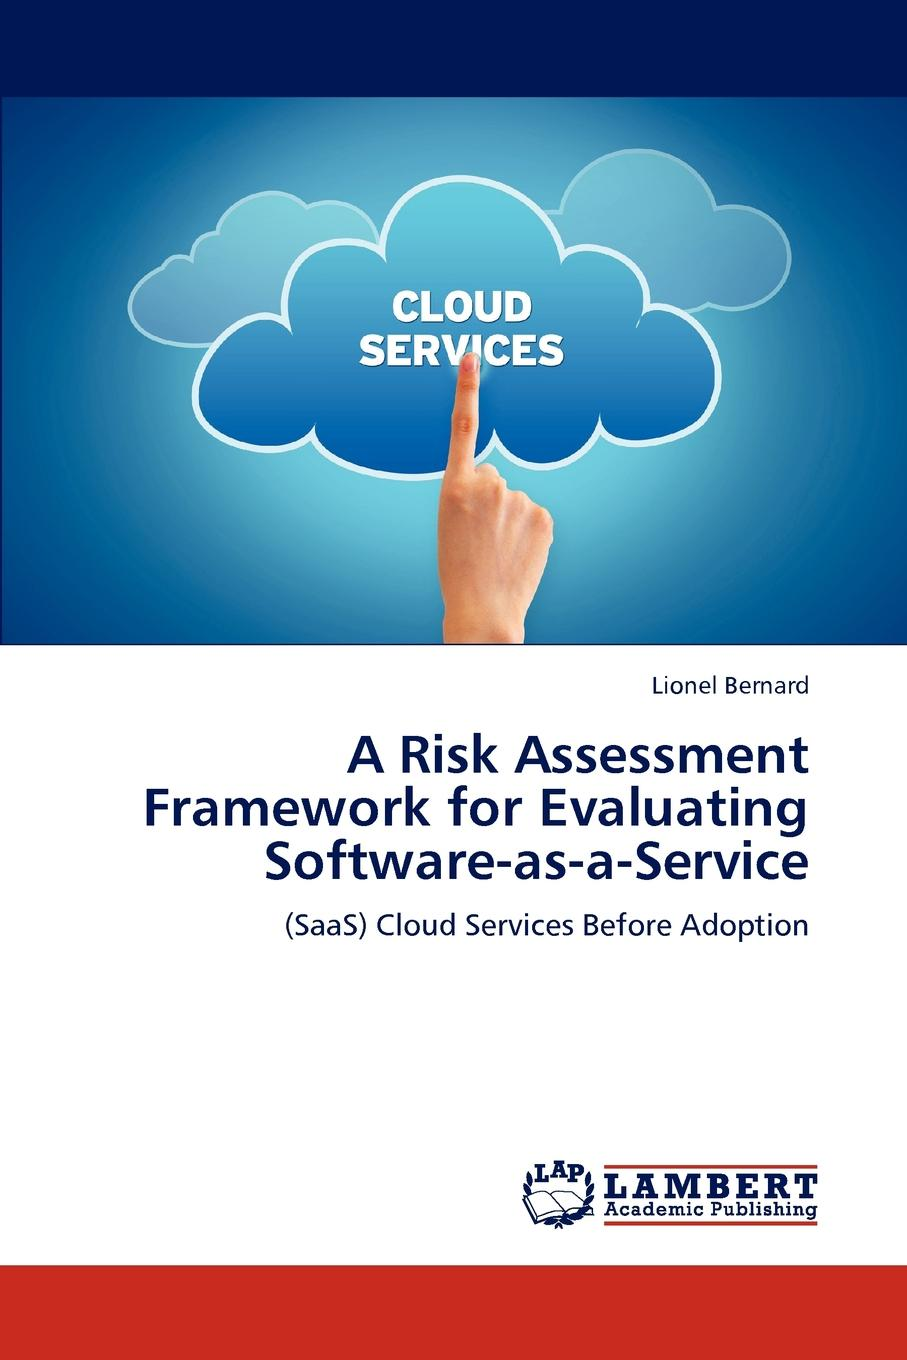 Lionel Bernard A Risk Assessment Framework for Evaluating Software-as-a-Service kirt butler c multinational finance evaluating opportunities costs and risks of operations